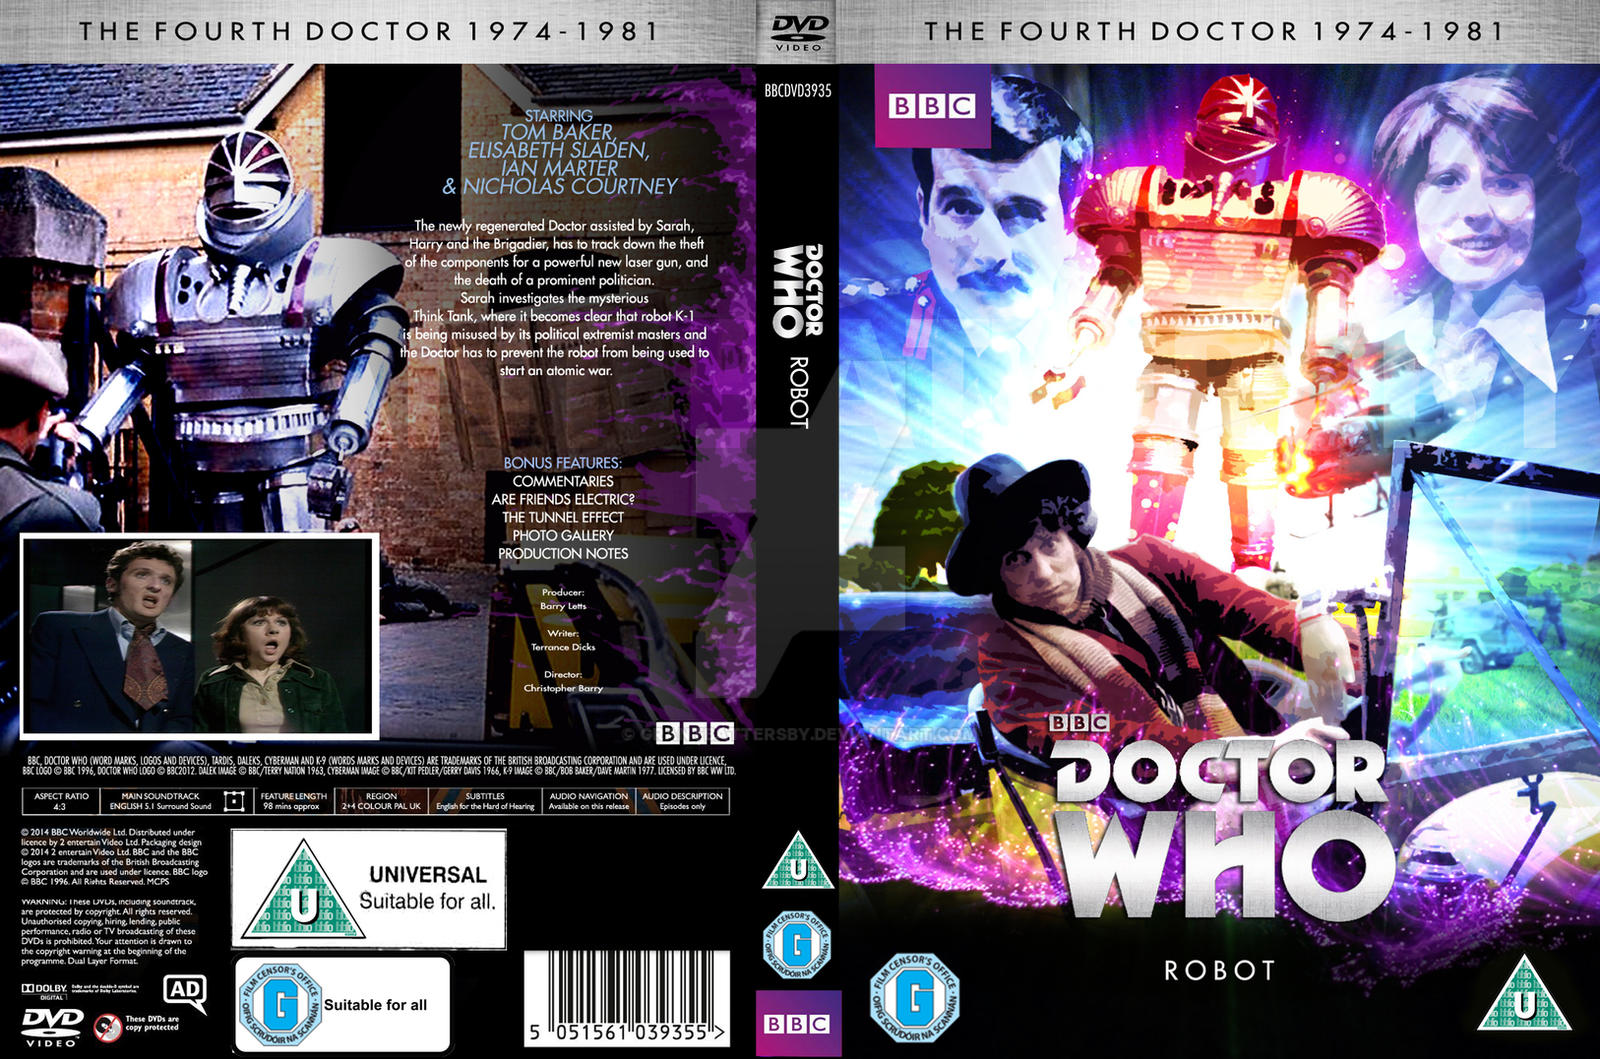 Doctor Who Robot custom DVD cover  by GrantBattersby on DeviantArt